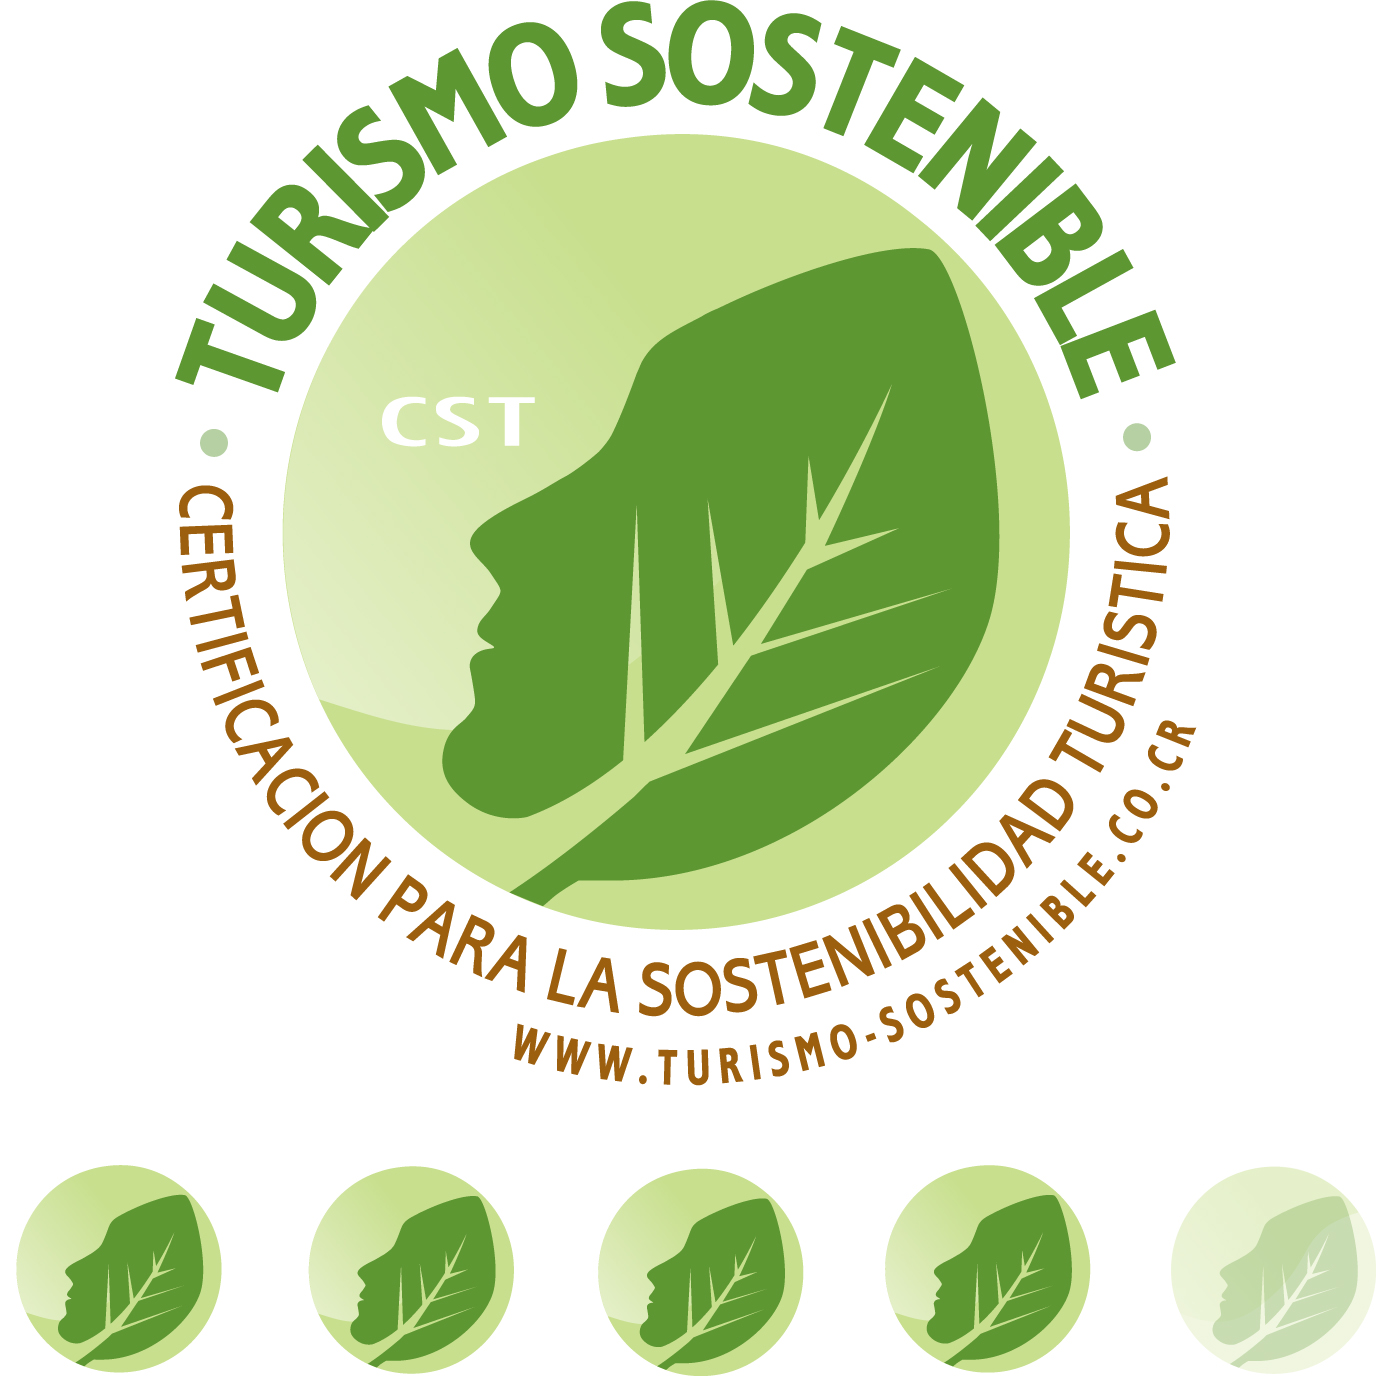 Vista Los Sueños - Certified Sustainable Tourism // Turismo Sostenible Certificado